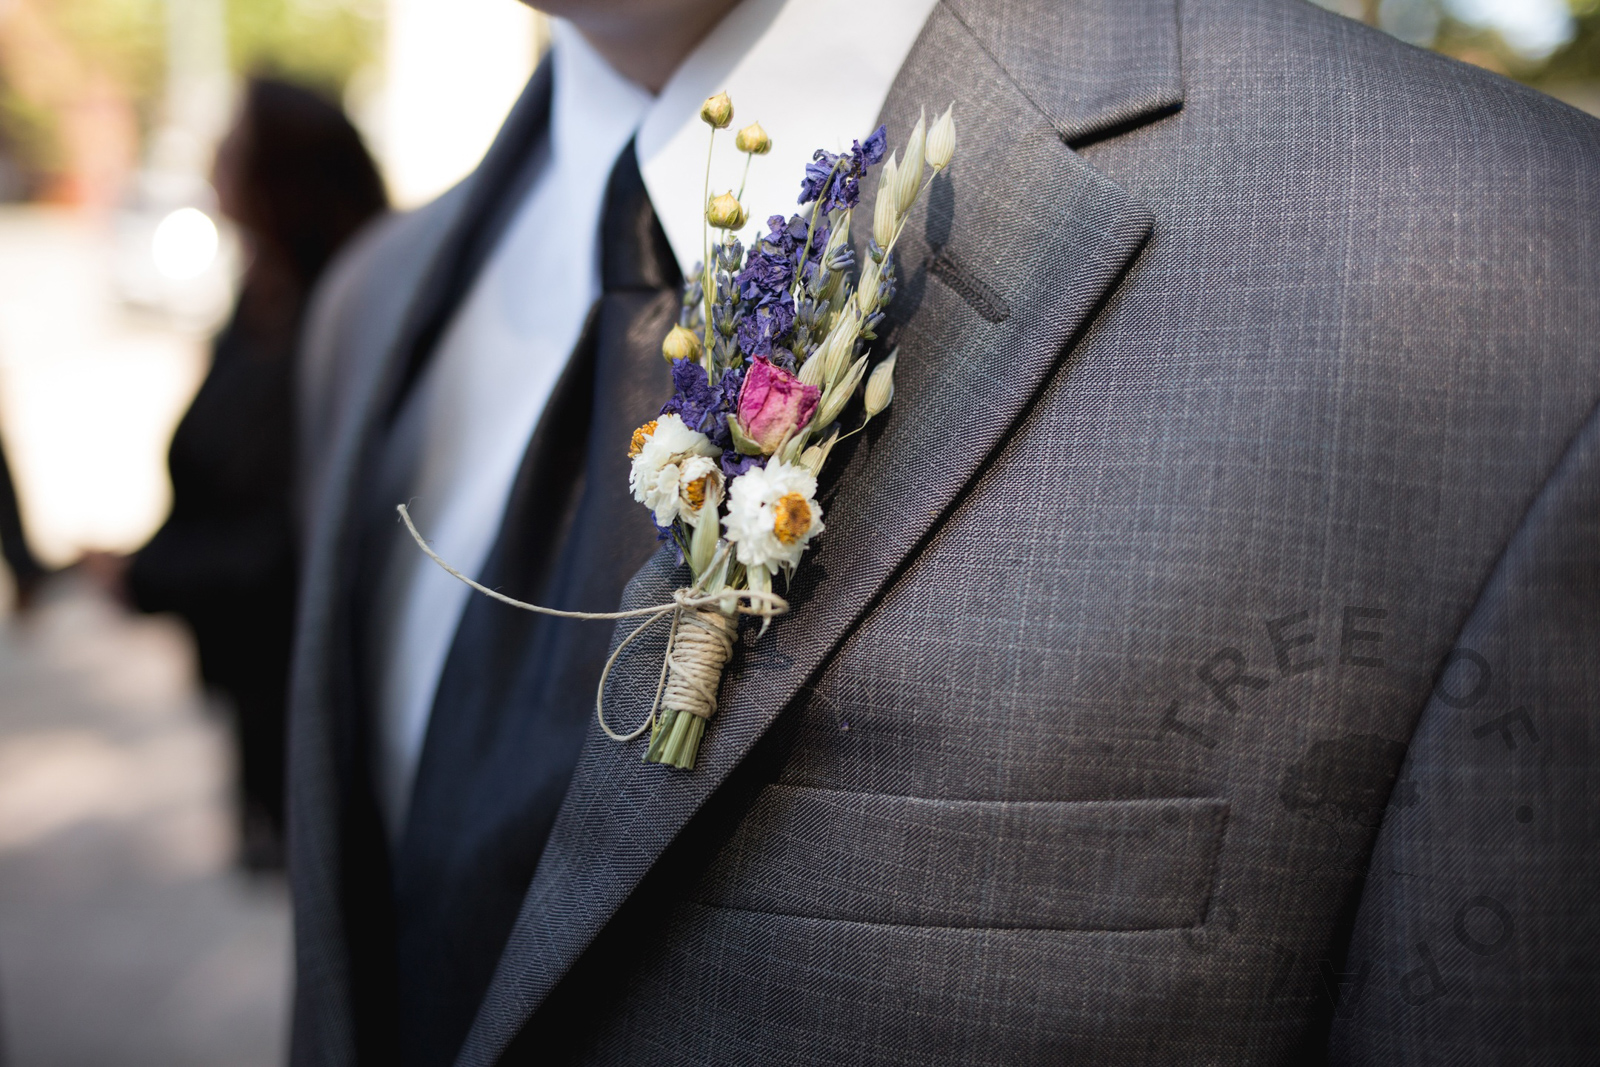 luxury gift ideas for your groom